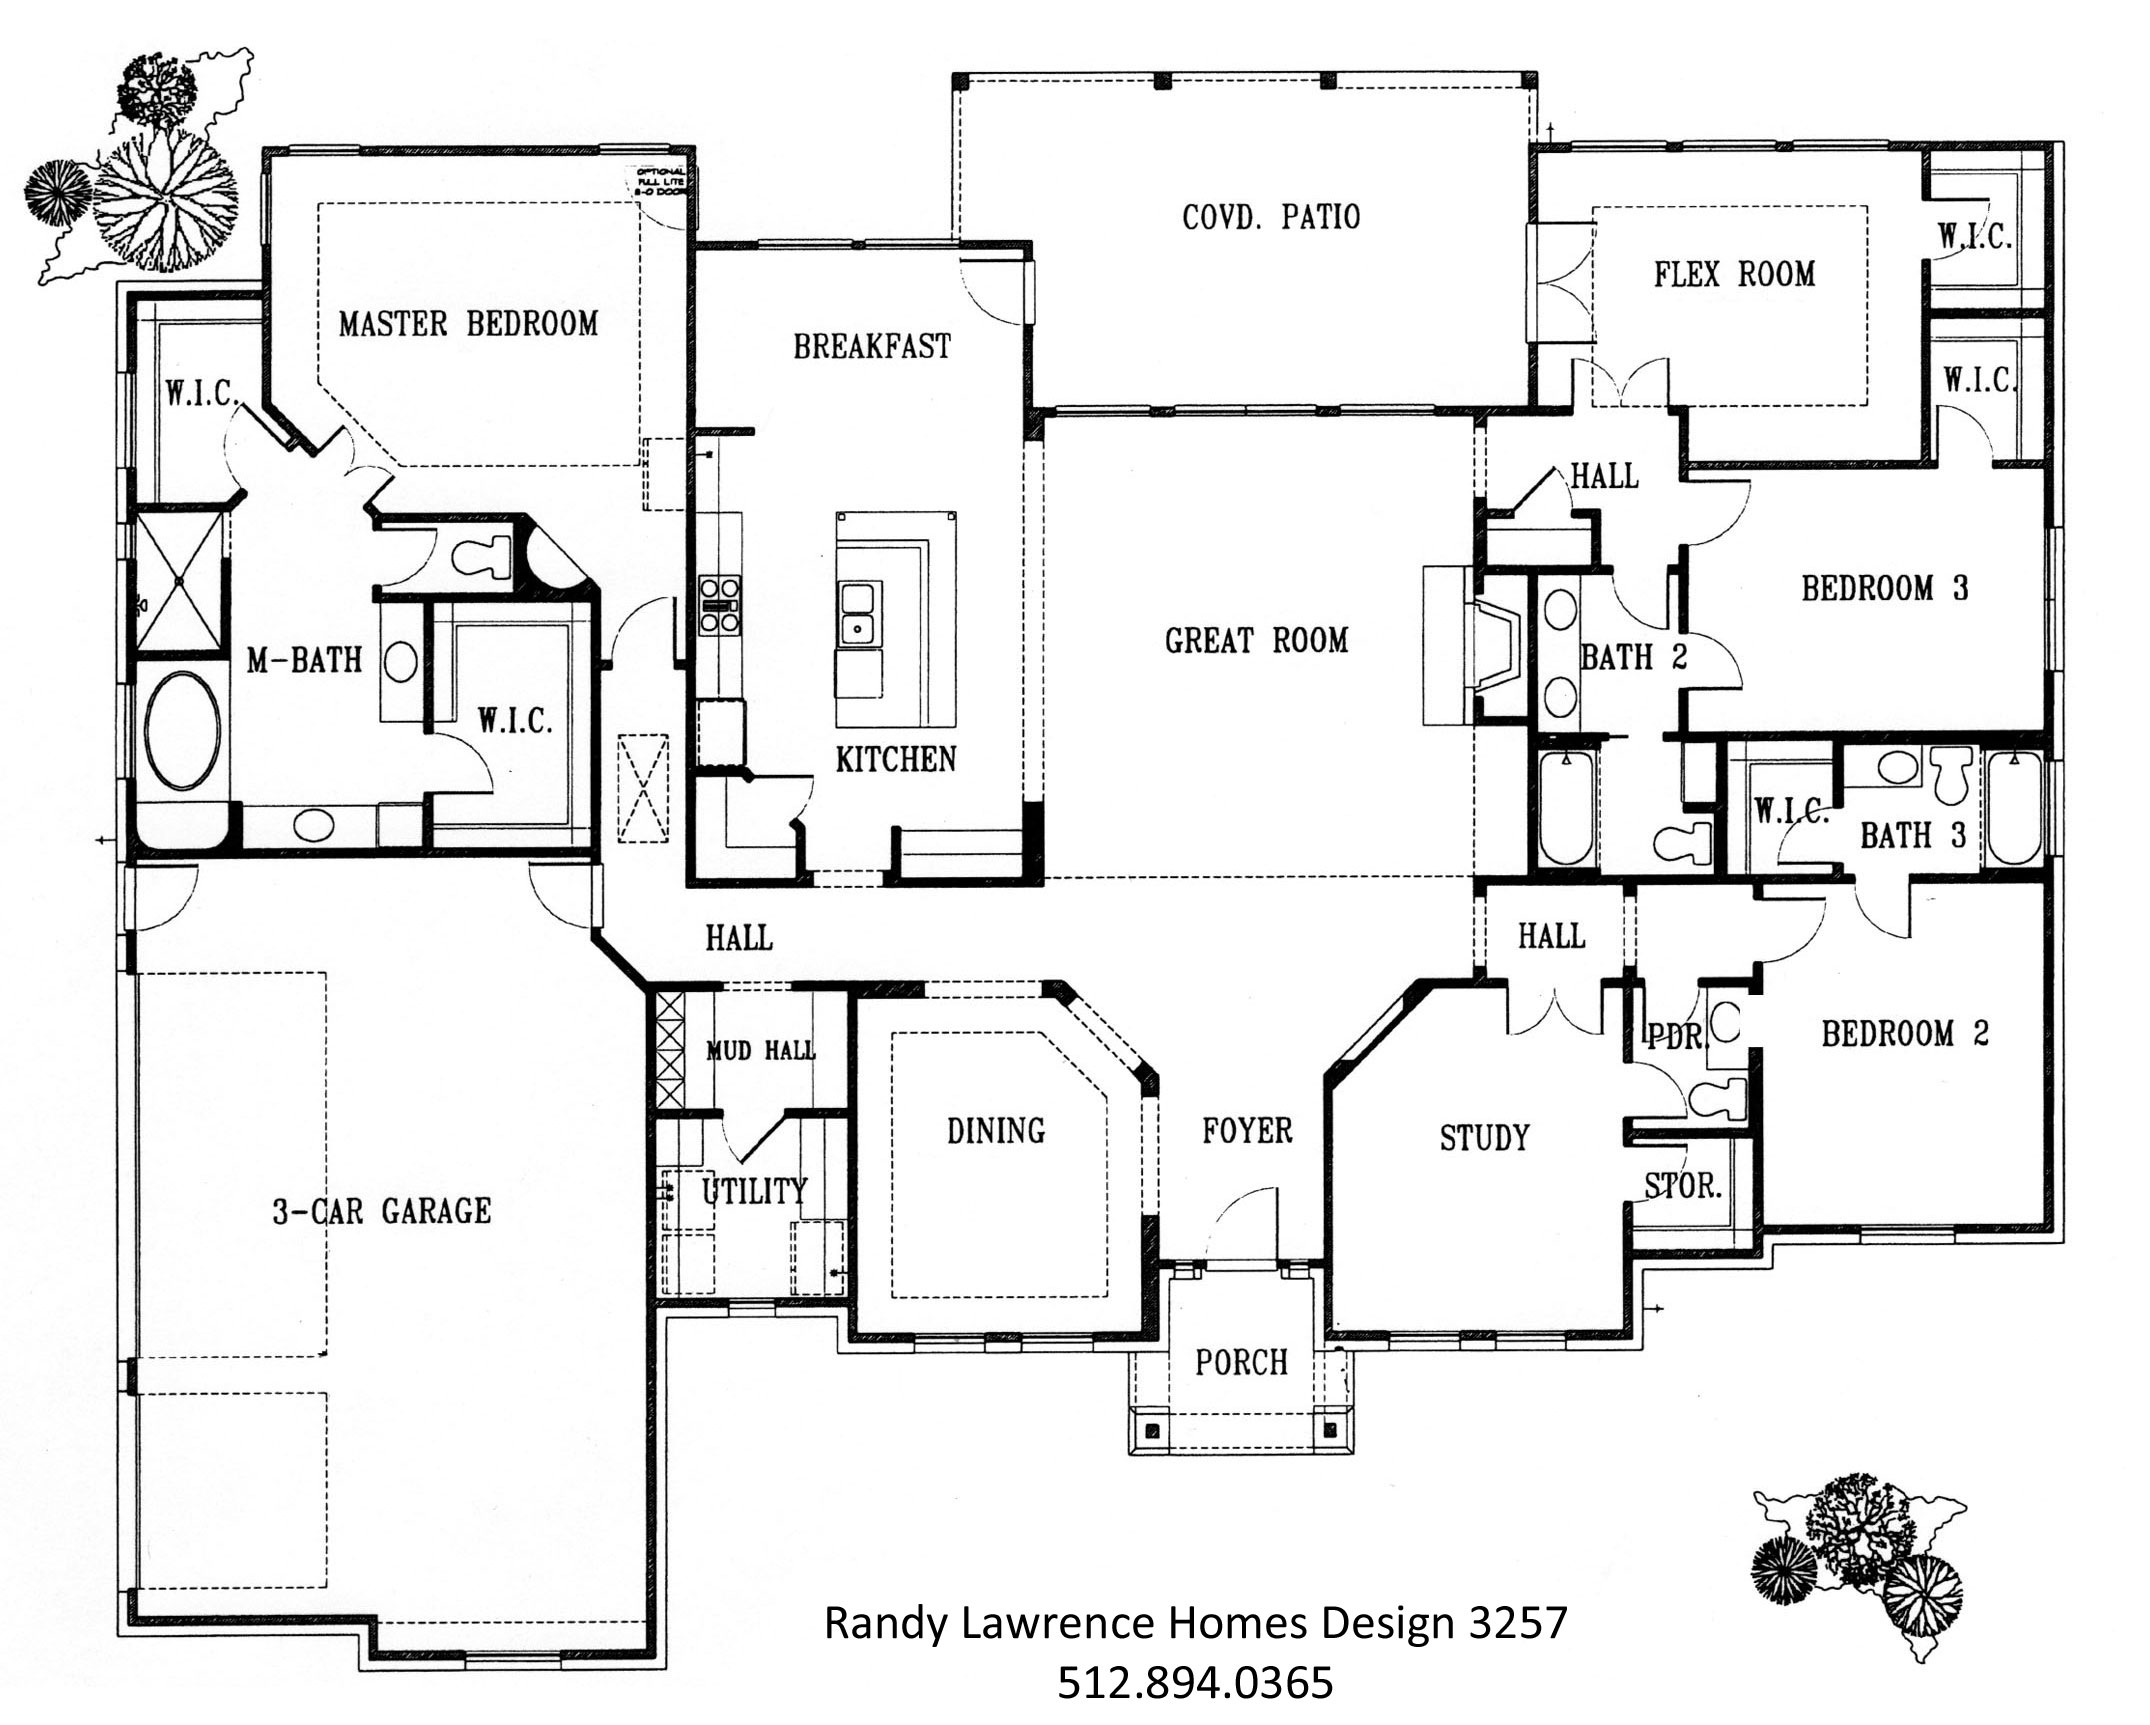 floor plans randy lawrence